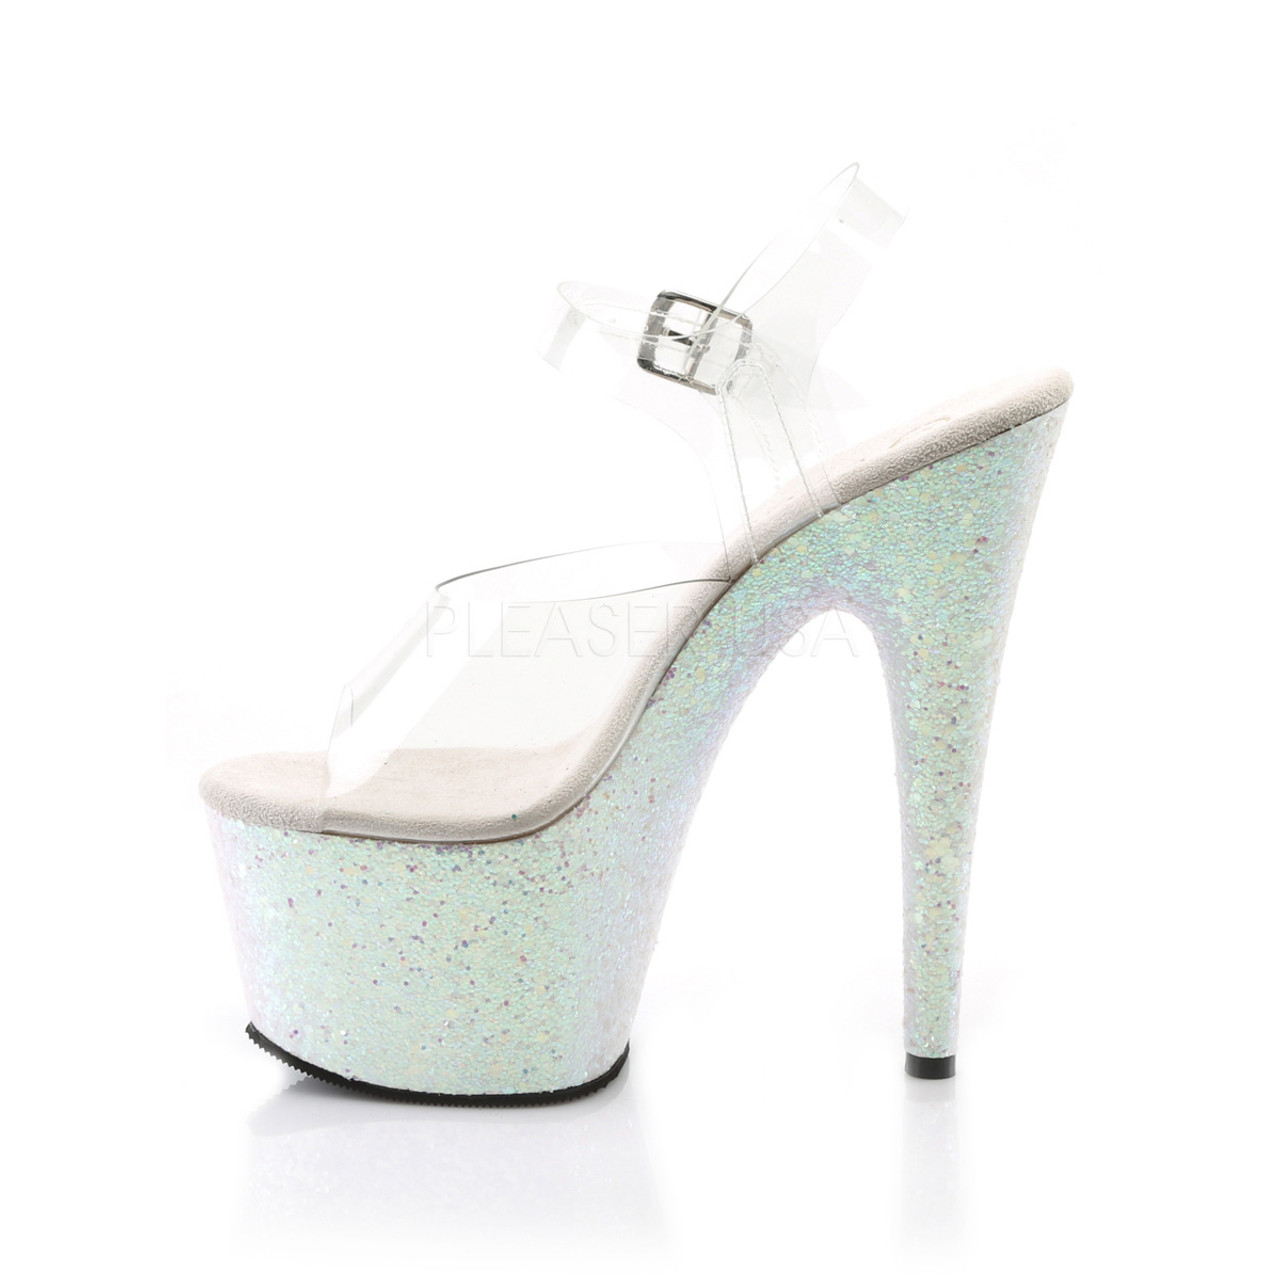 """Pleaser Shoes -Sexy clear/Opal 7 inch heel pole dancing high heels with ankle strap 2.8"""" platform."""